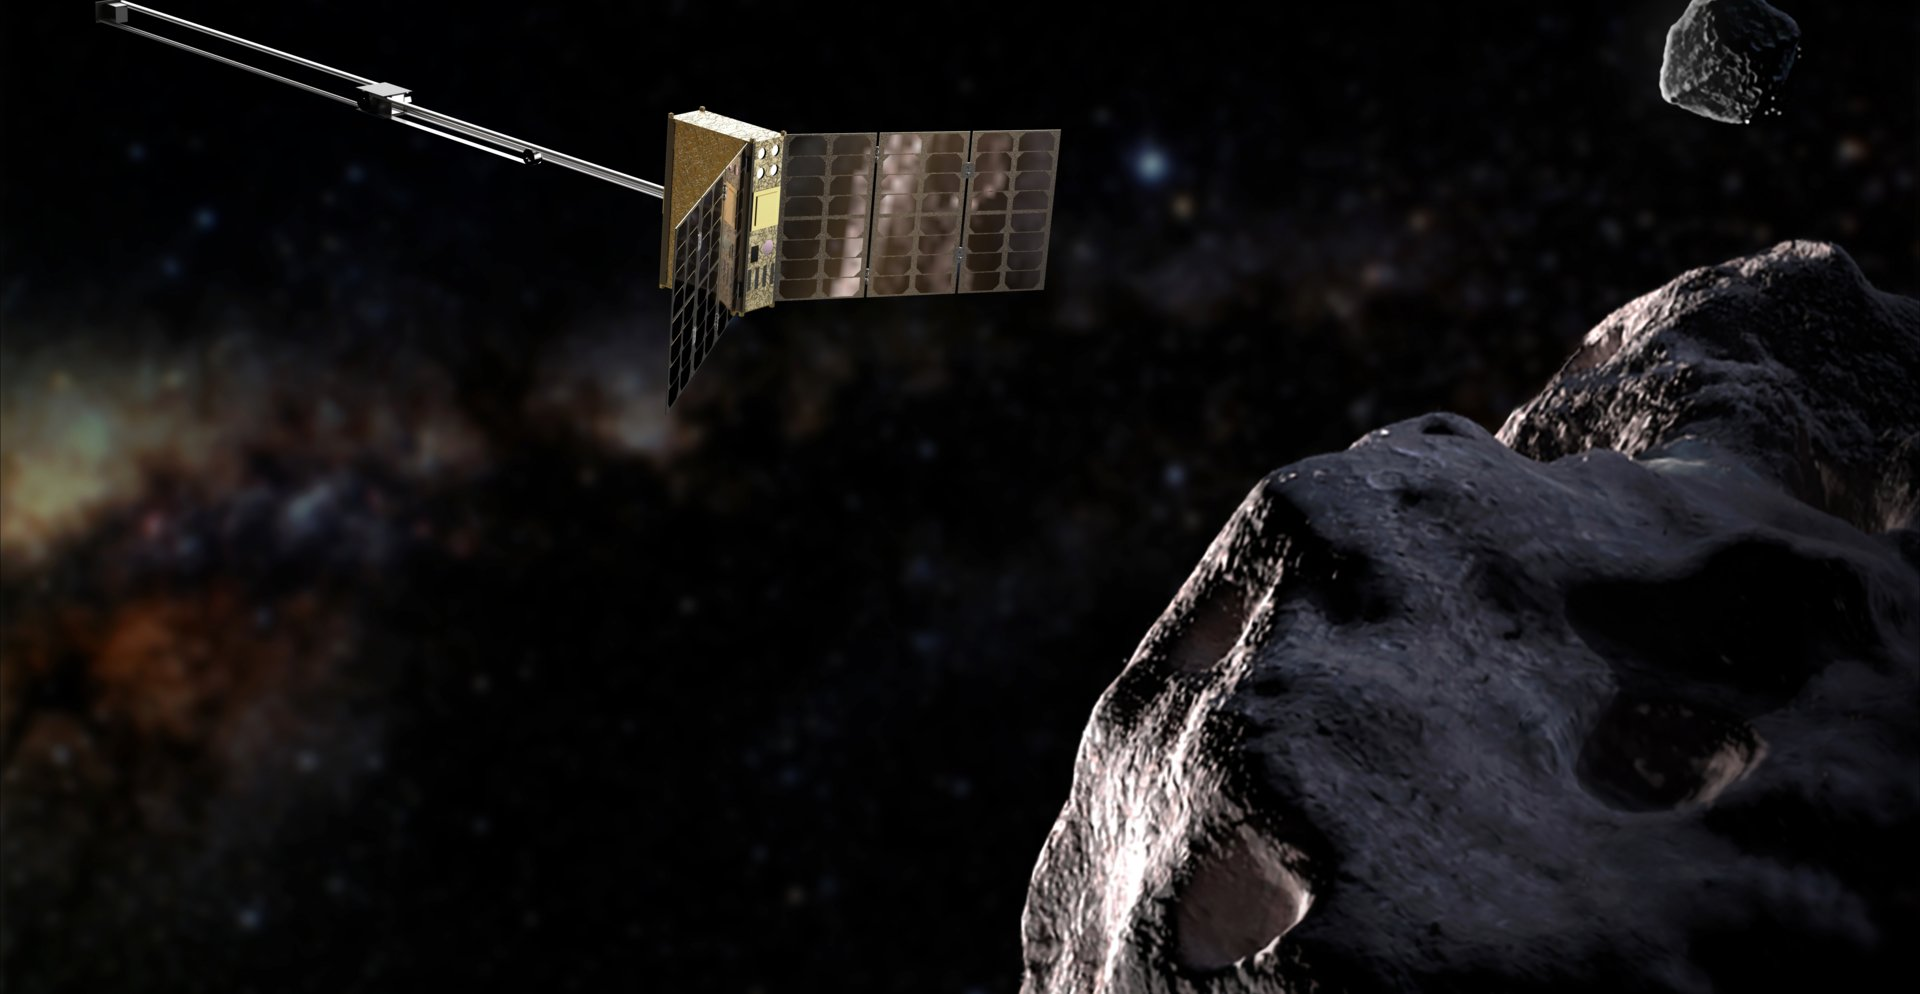 Hera's APEX CubeSat will reveal the stuff that asteroids are